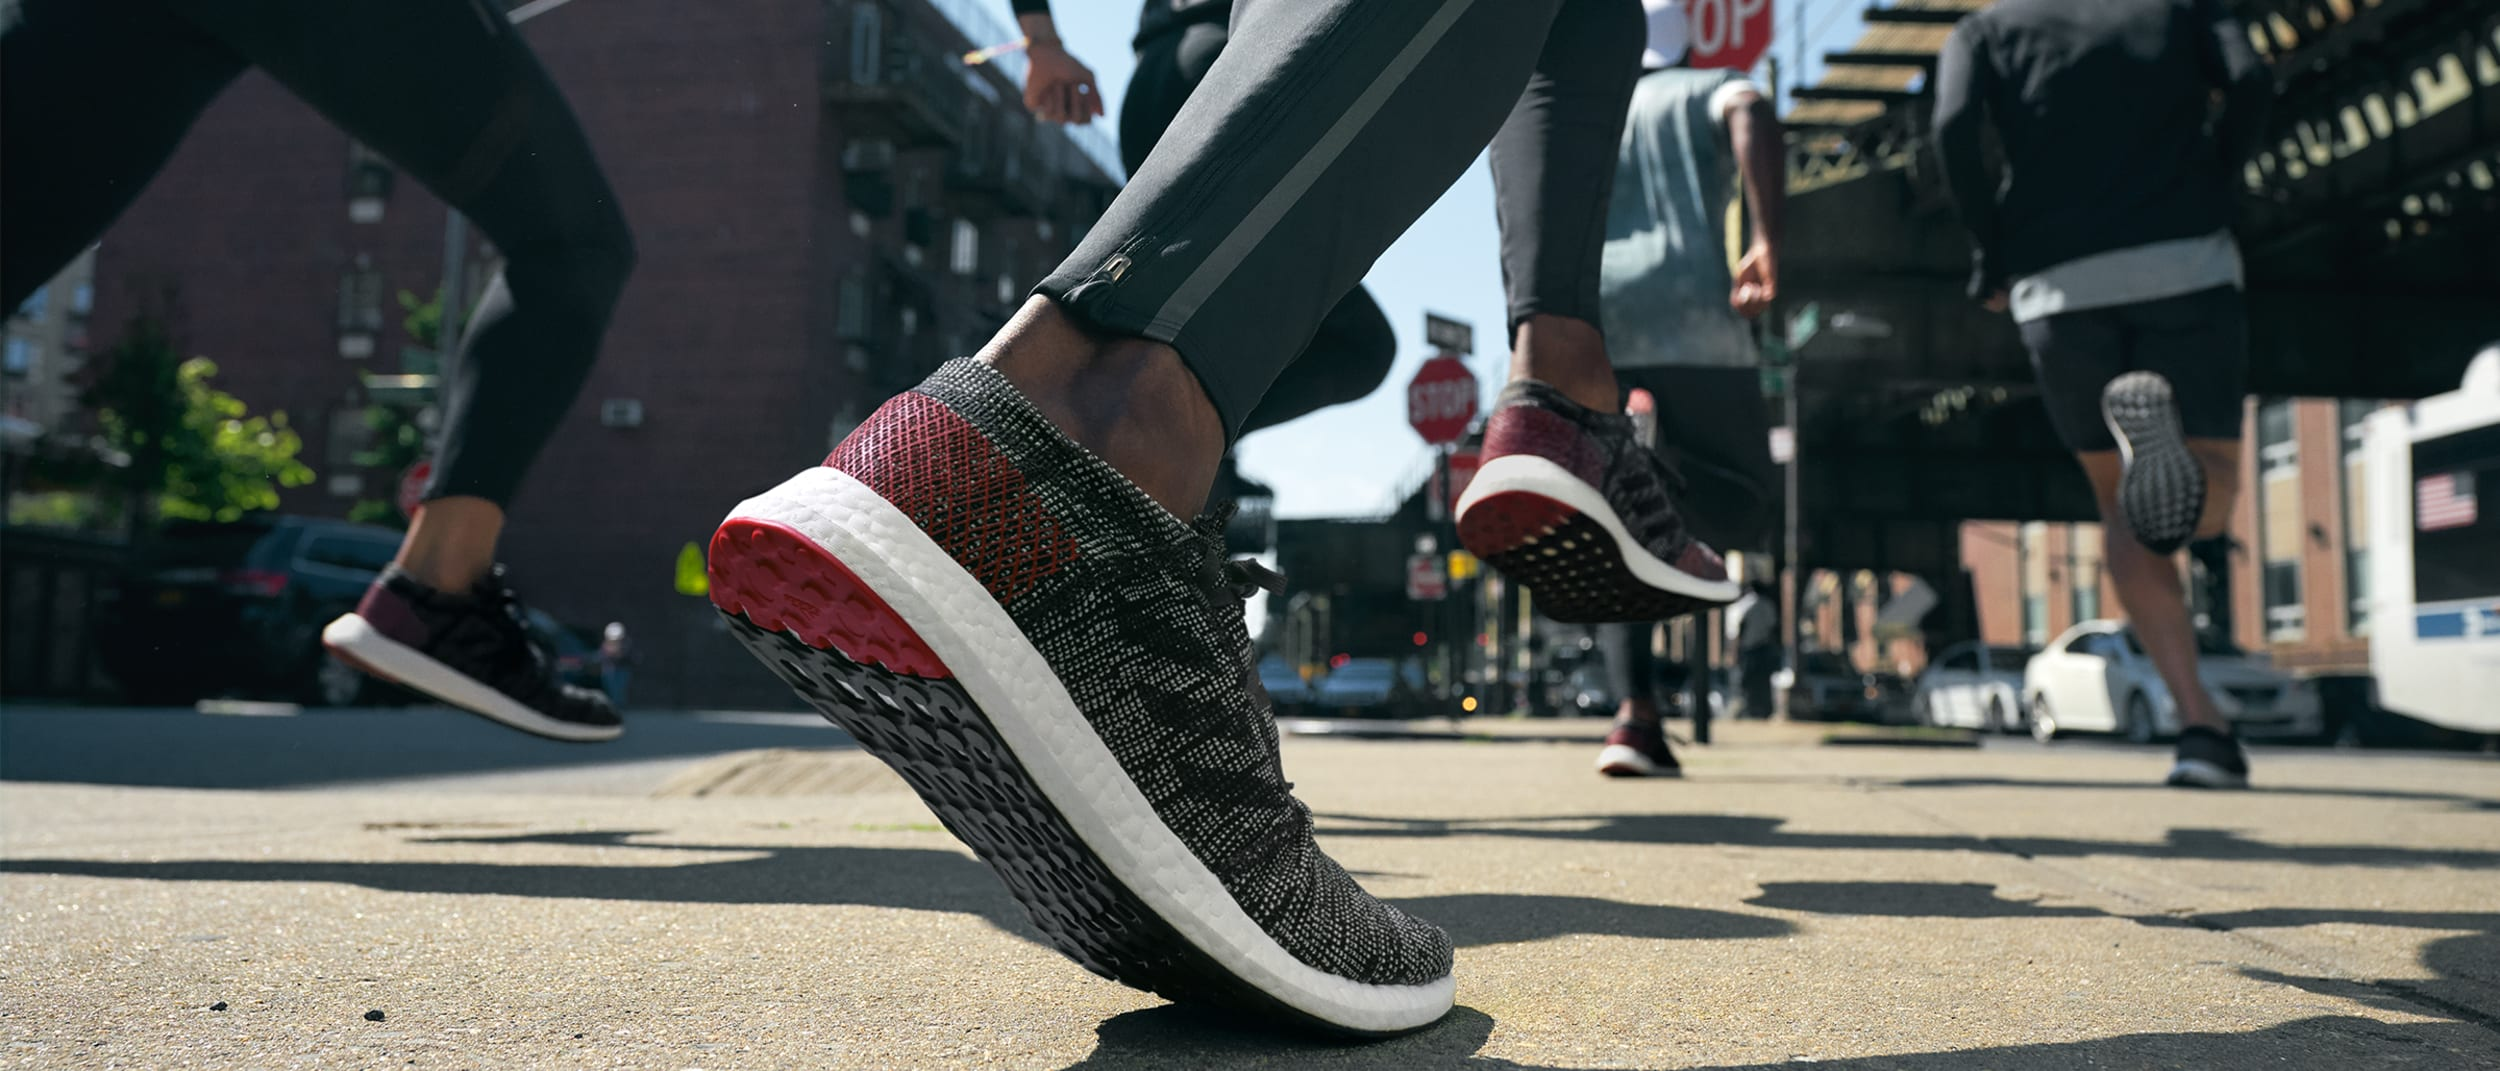 No matter how you move, the #PureBOOST GO moves with you